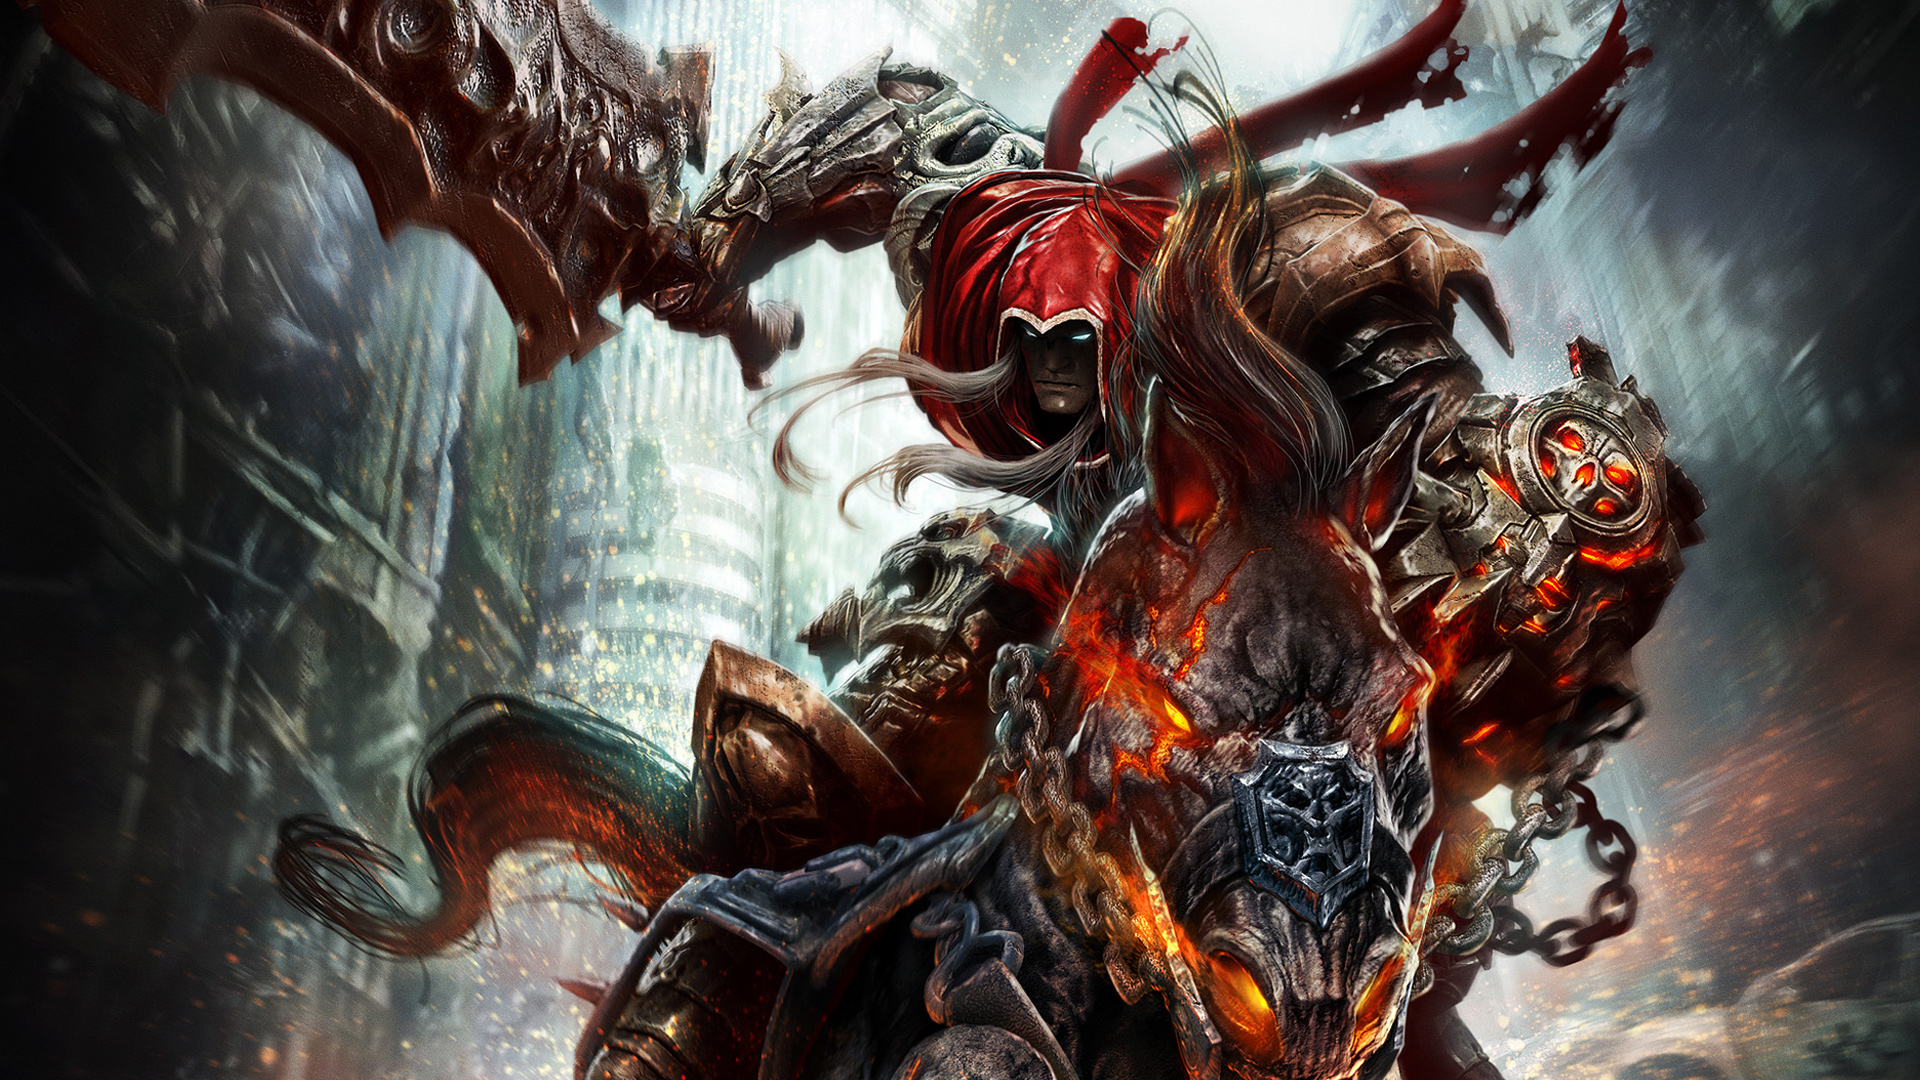 Darksiders 11864 wallpaper